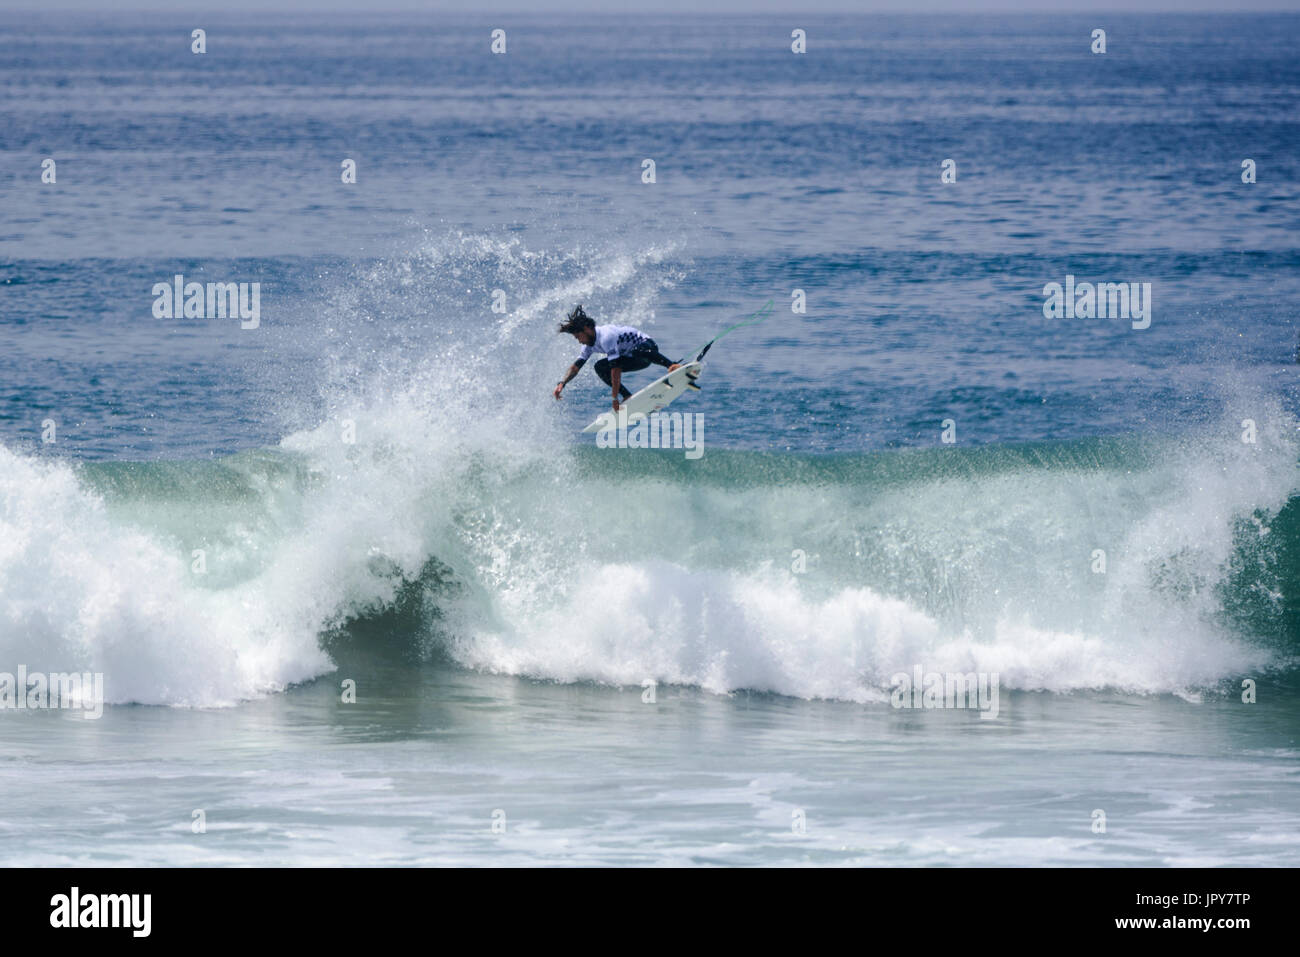 Huntington Beach, USA. 02 August, 2017. Heitor Alves (BRA) lands one of multiple airs during his round 2 heat of the men's QS competition at the 2017 VANS US Open of Surfing. Credit: Benjamin Ginsberg/Alamy Live News. - Stock Image